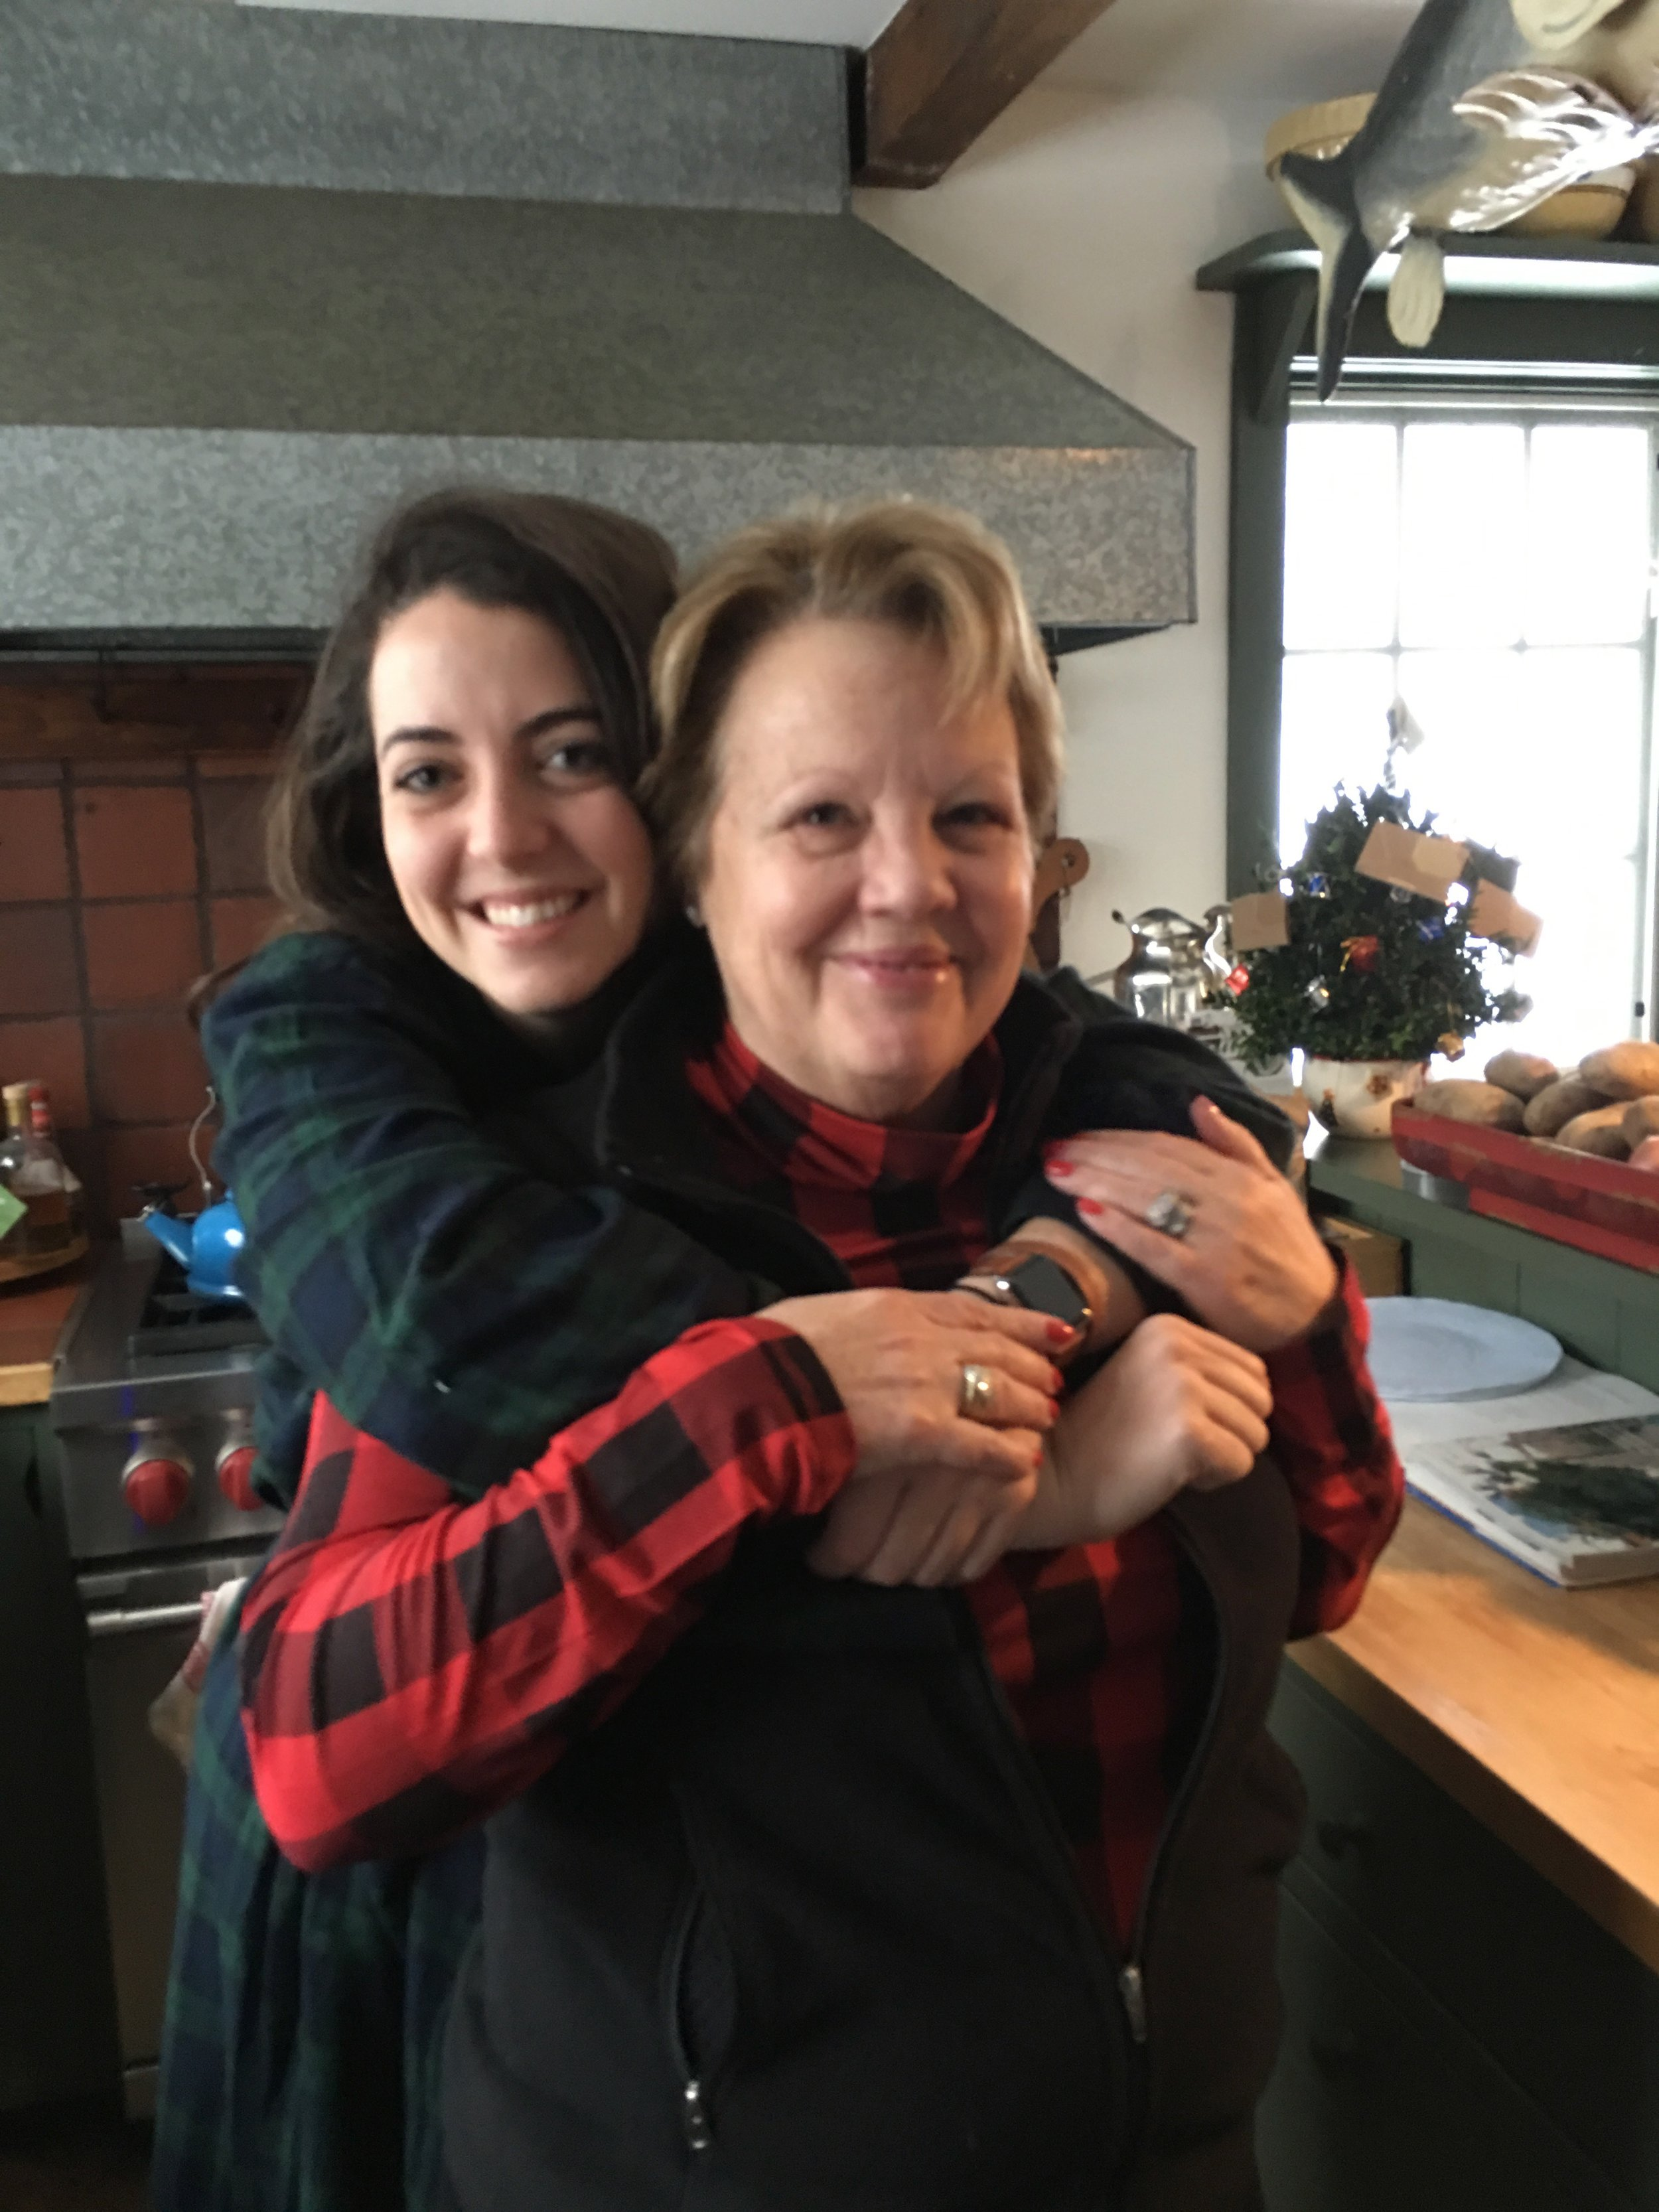 Brookie and her Aunt Puddy in the cozy kitchen